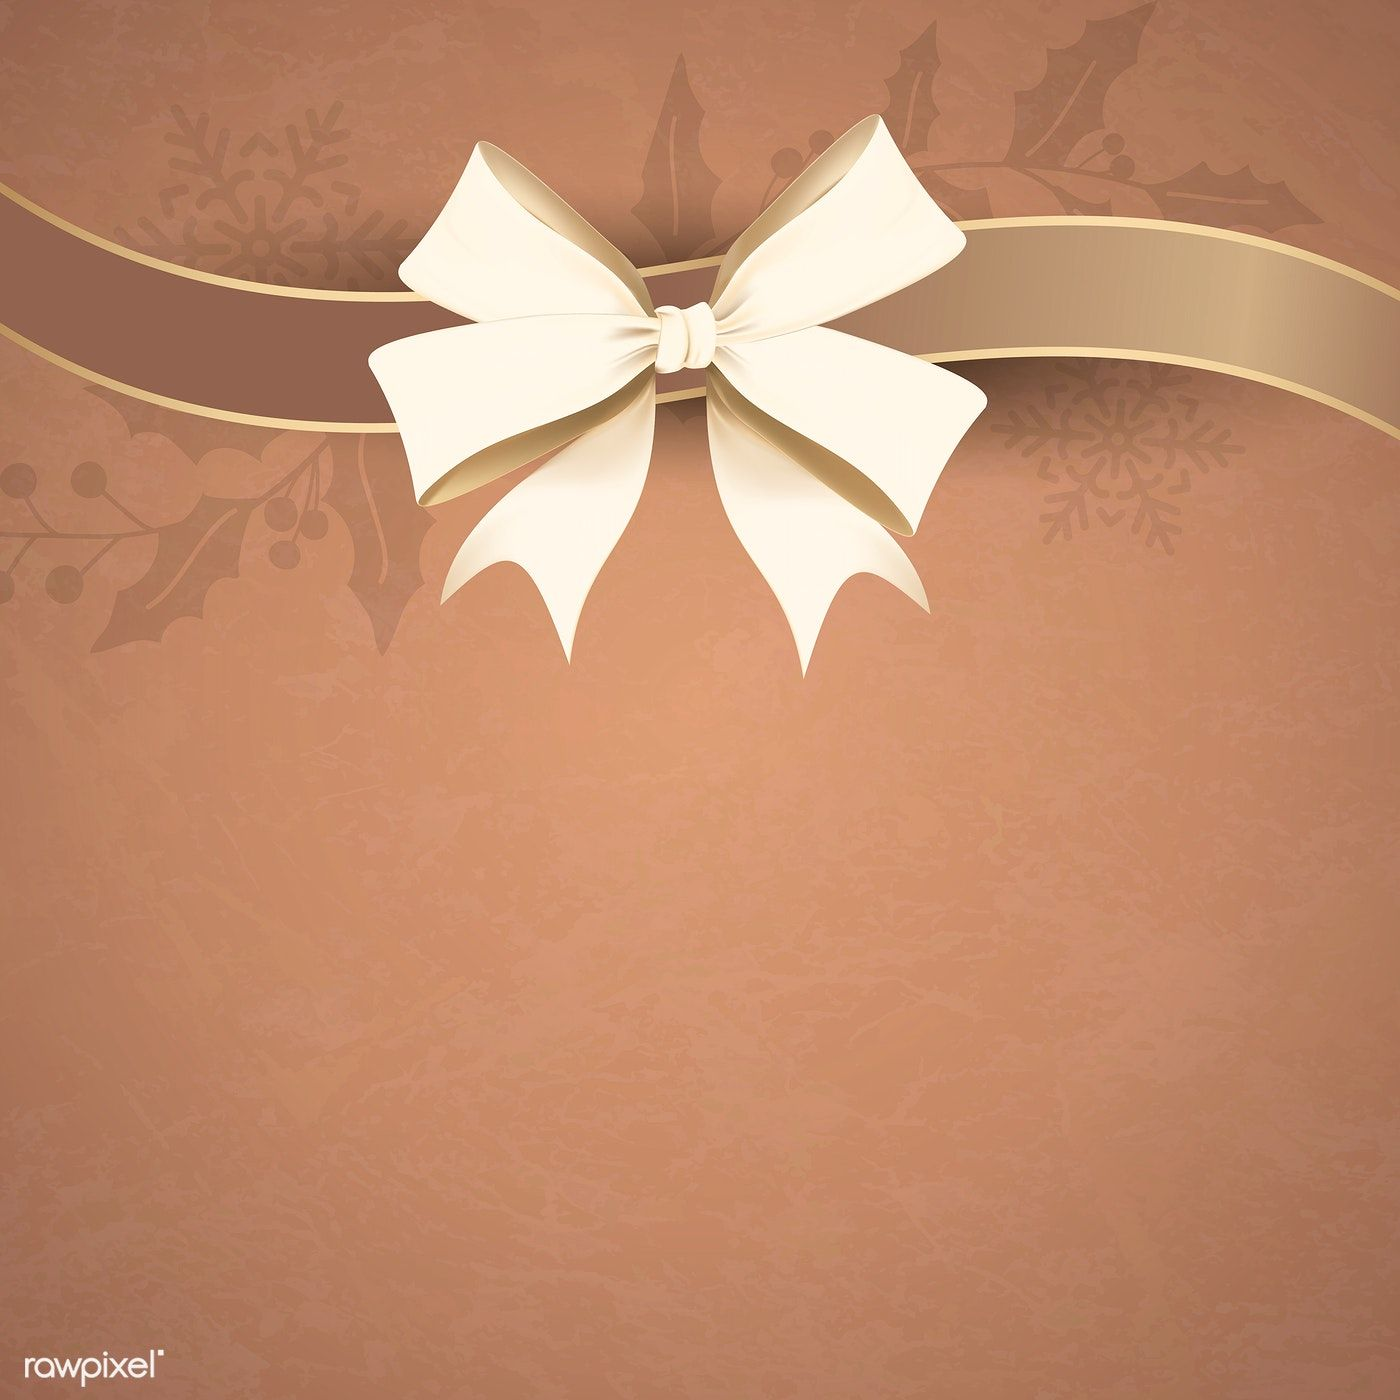 Gold Ribbon Bow On Brown Background Vector Premium Image By Rawpixel Com Kappy Kappy Gold Ribbons Ribbon Bows Christmas Frames